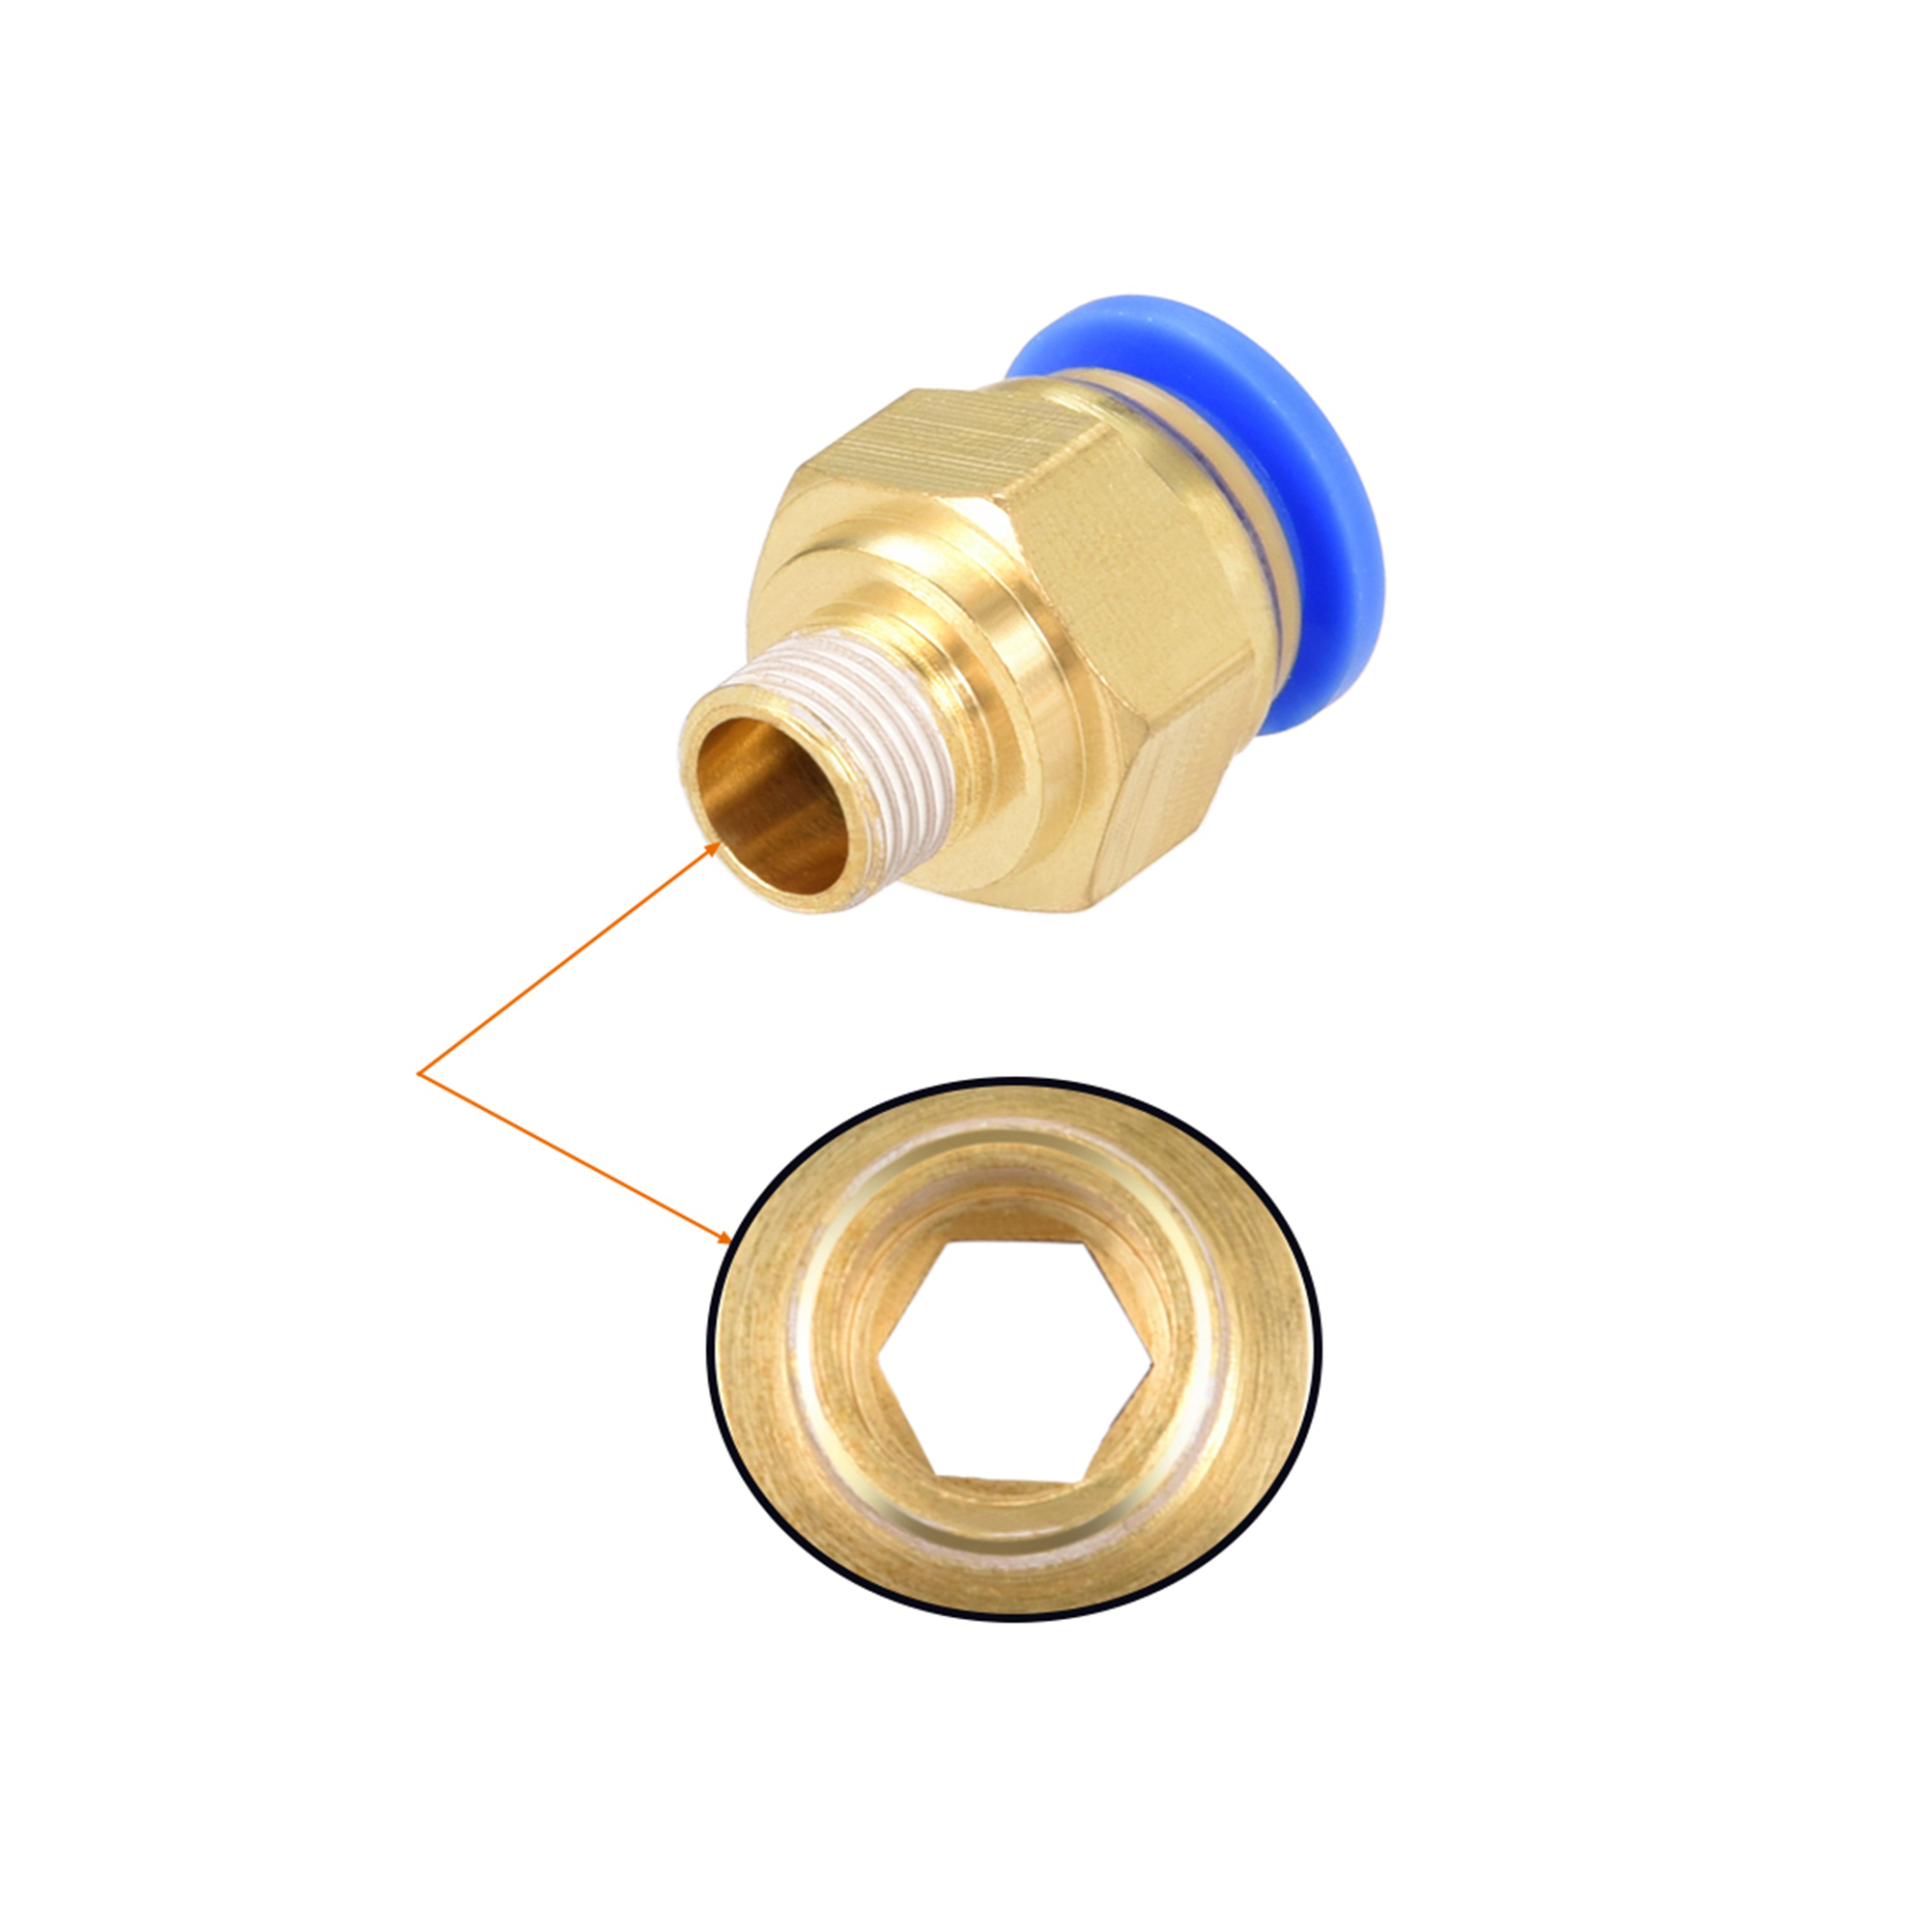 """10 Pcs 1/8"""" G Male Straight Thread 10mm Push In Joint Pneumatic Connector Fitting Quick Fittings - image 1 of 4"""